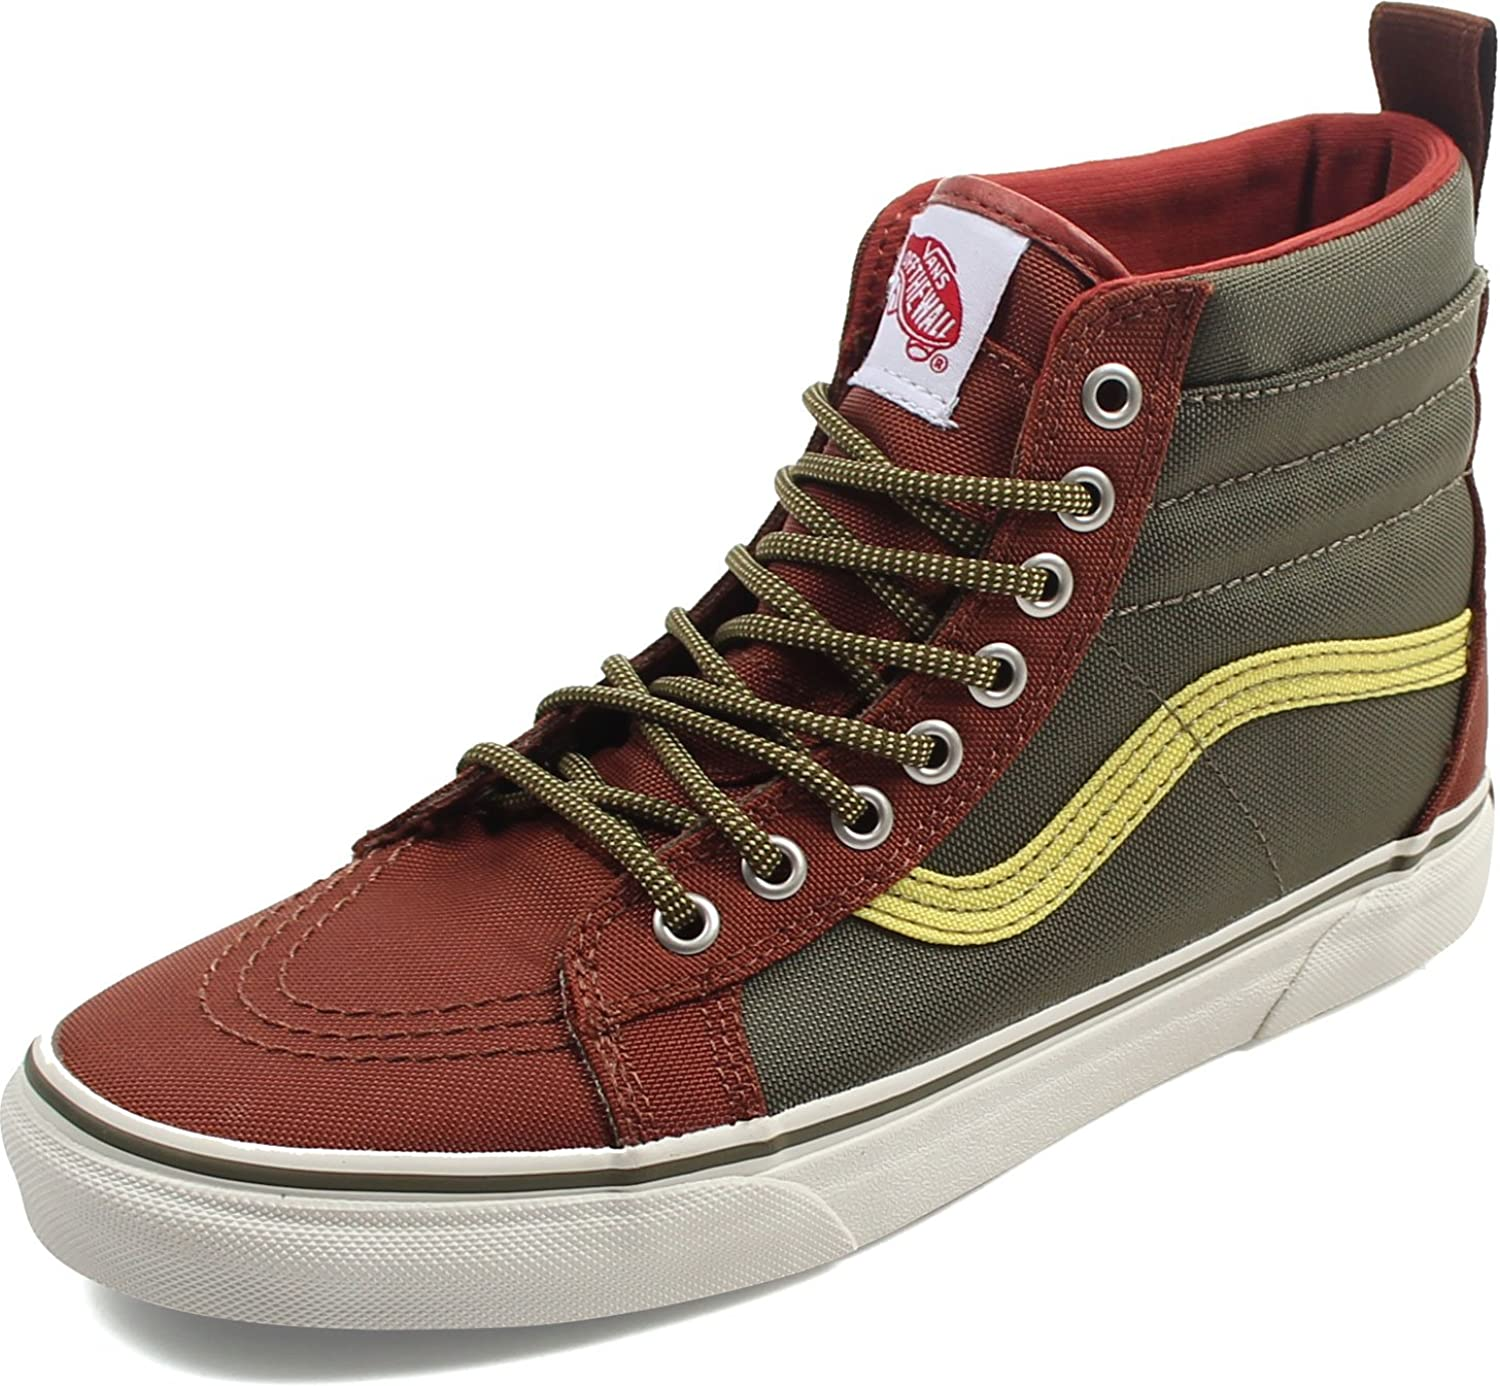 vans mte colors